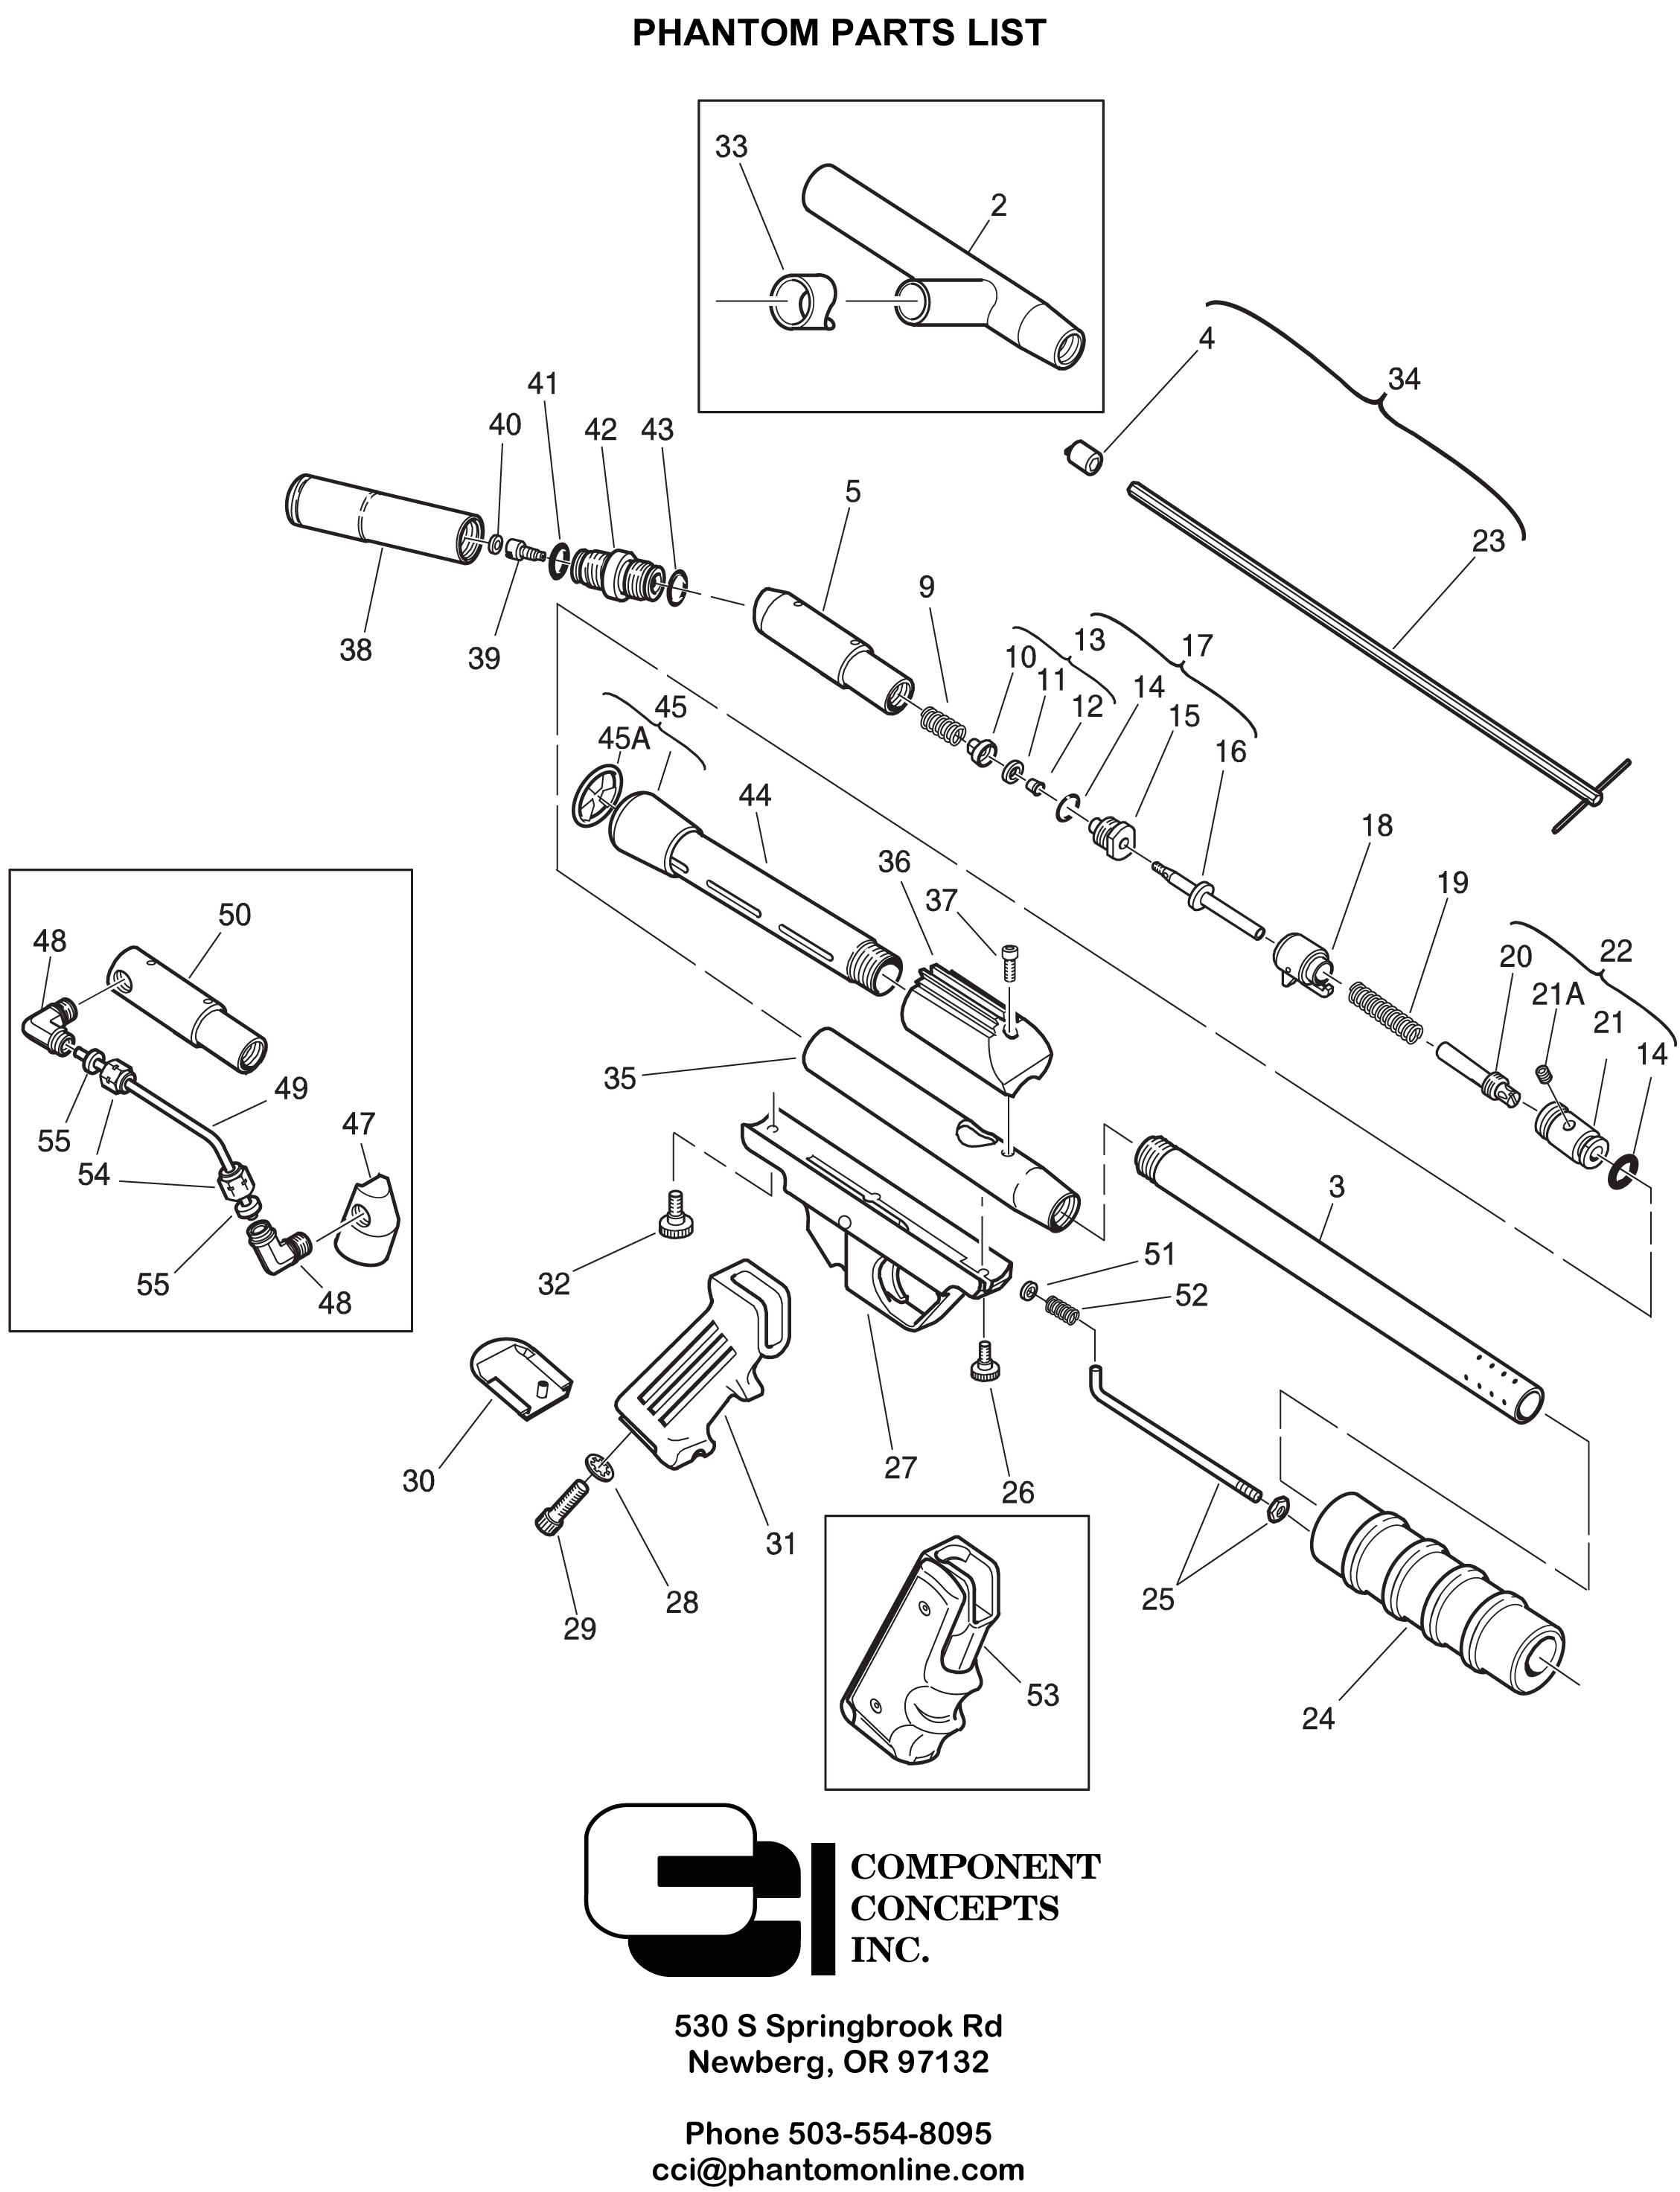 Standard Adapter Component Concepts Inc Engine Diagram